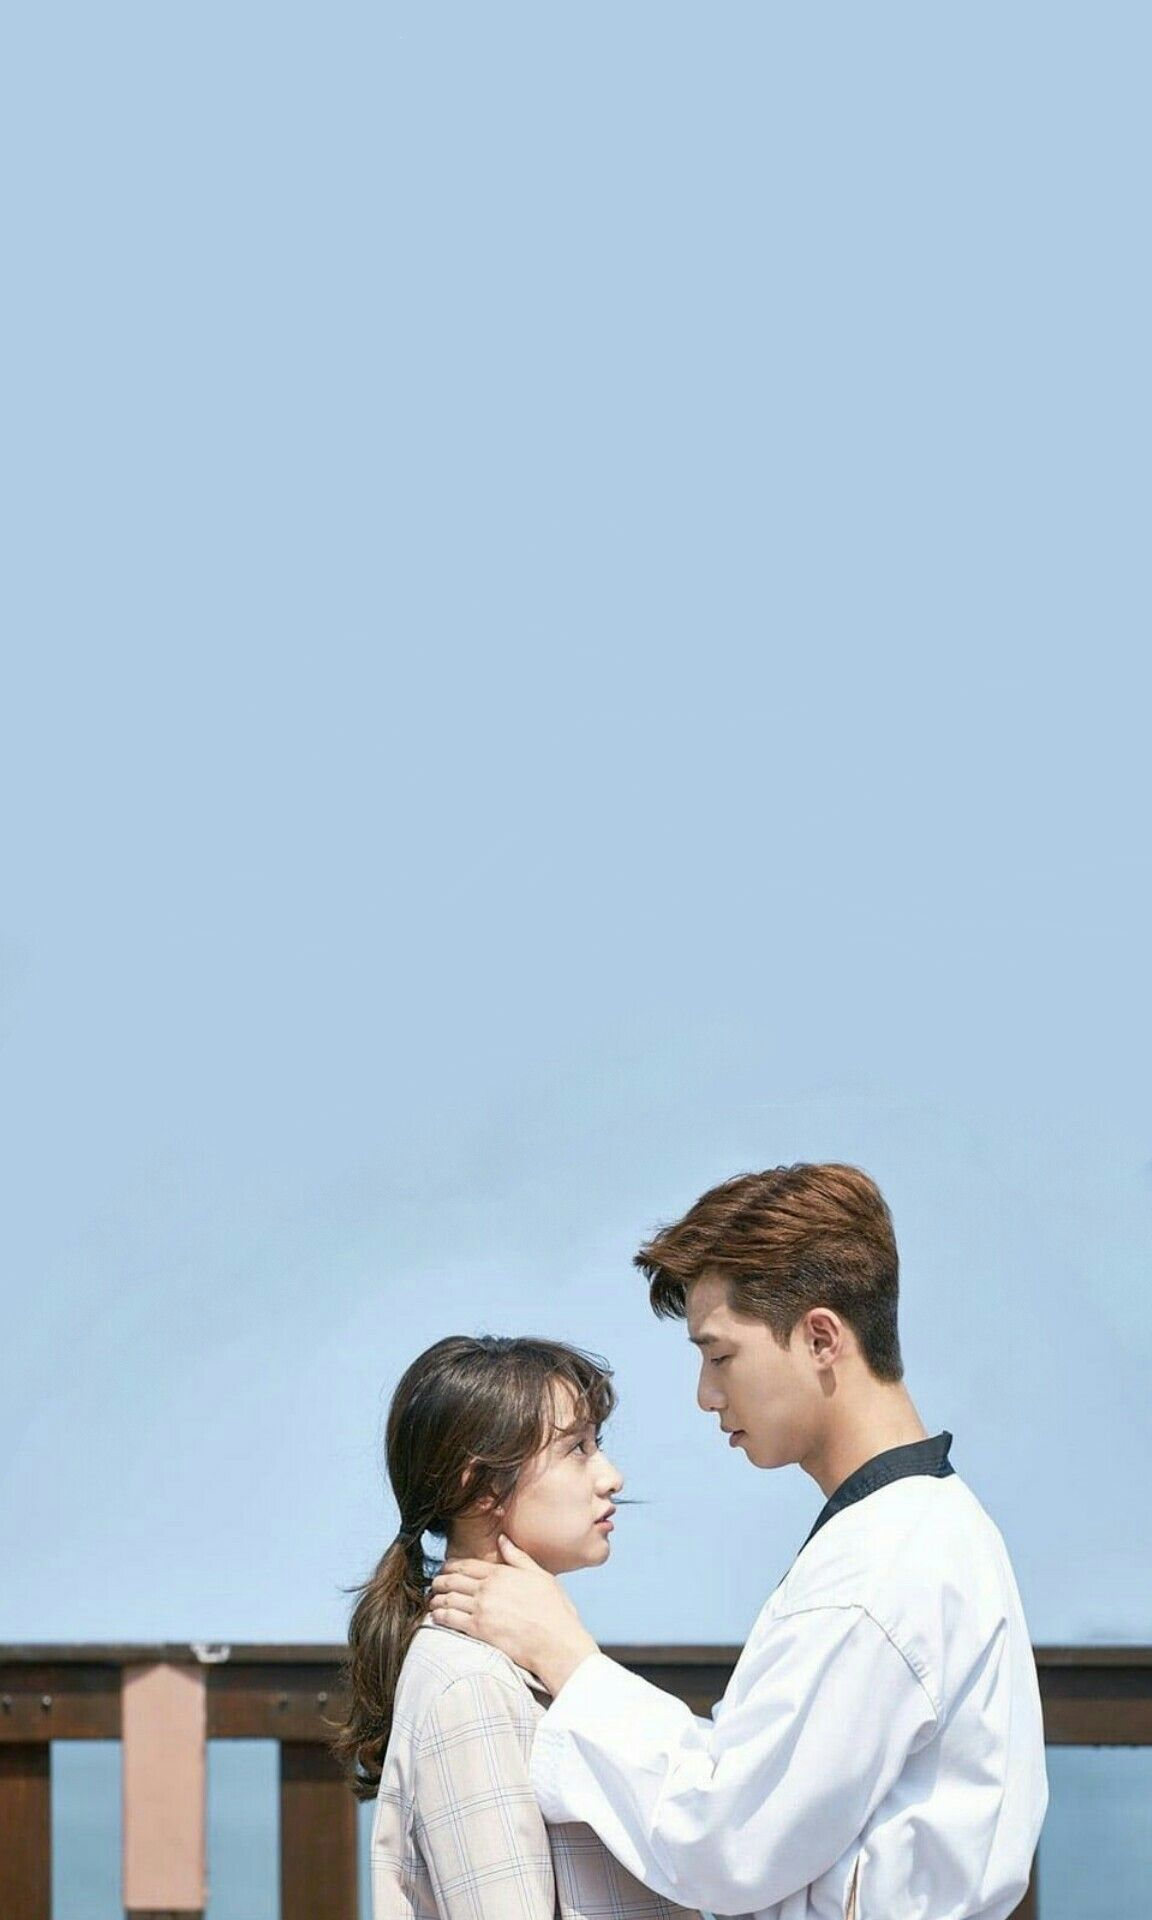 Kim Ji Won Park Seo Joon Fight For My Way Wallpaper Selebritas Penyakit Kejiwaan Artis